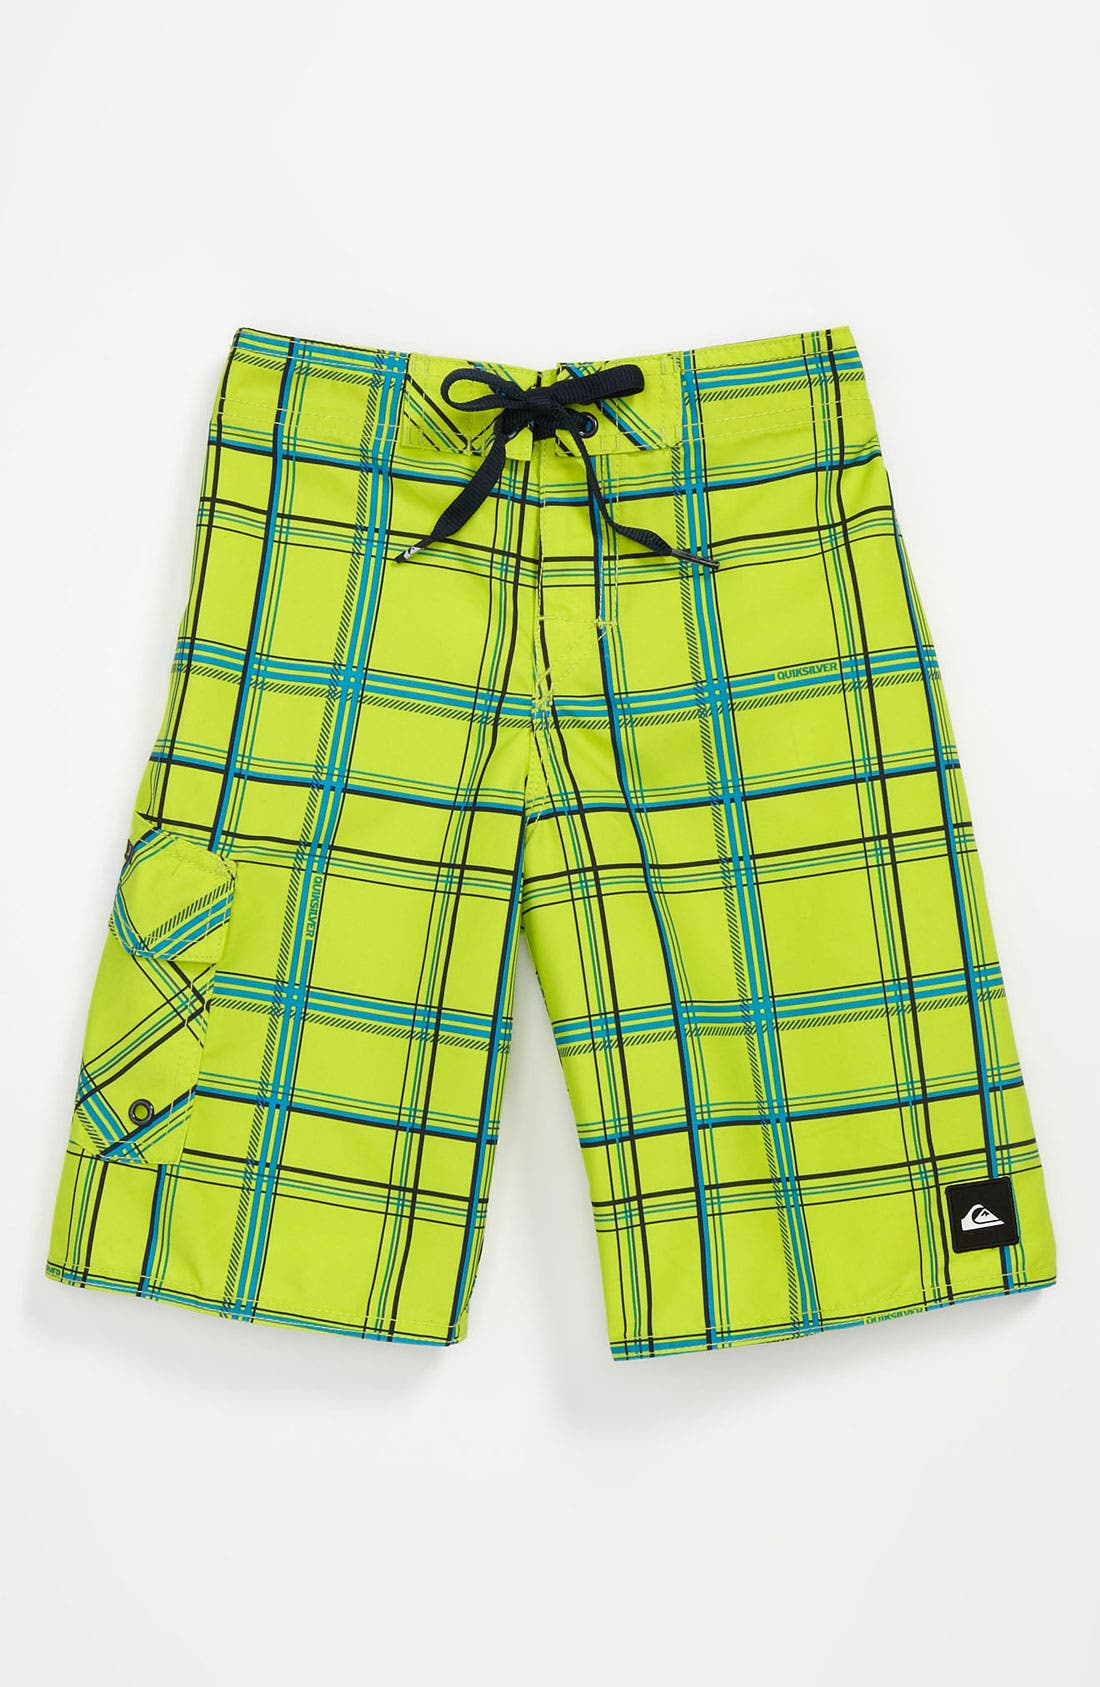 Main Image - Quiksilver 'Paid In Full' Board Shorts (Little Boys)